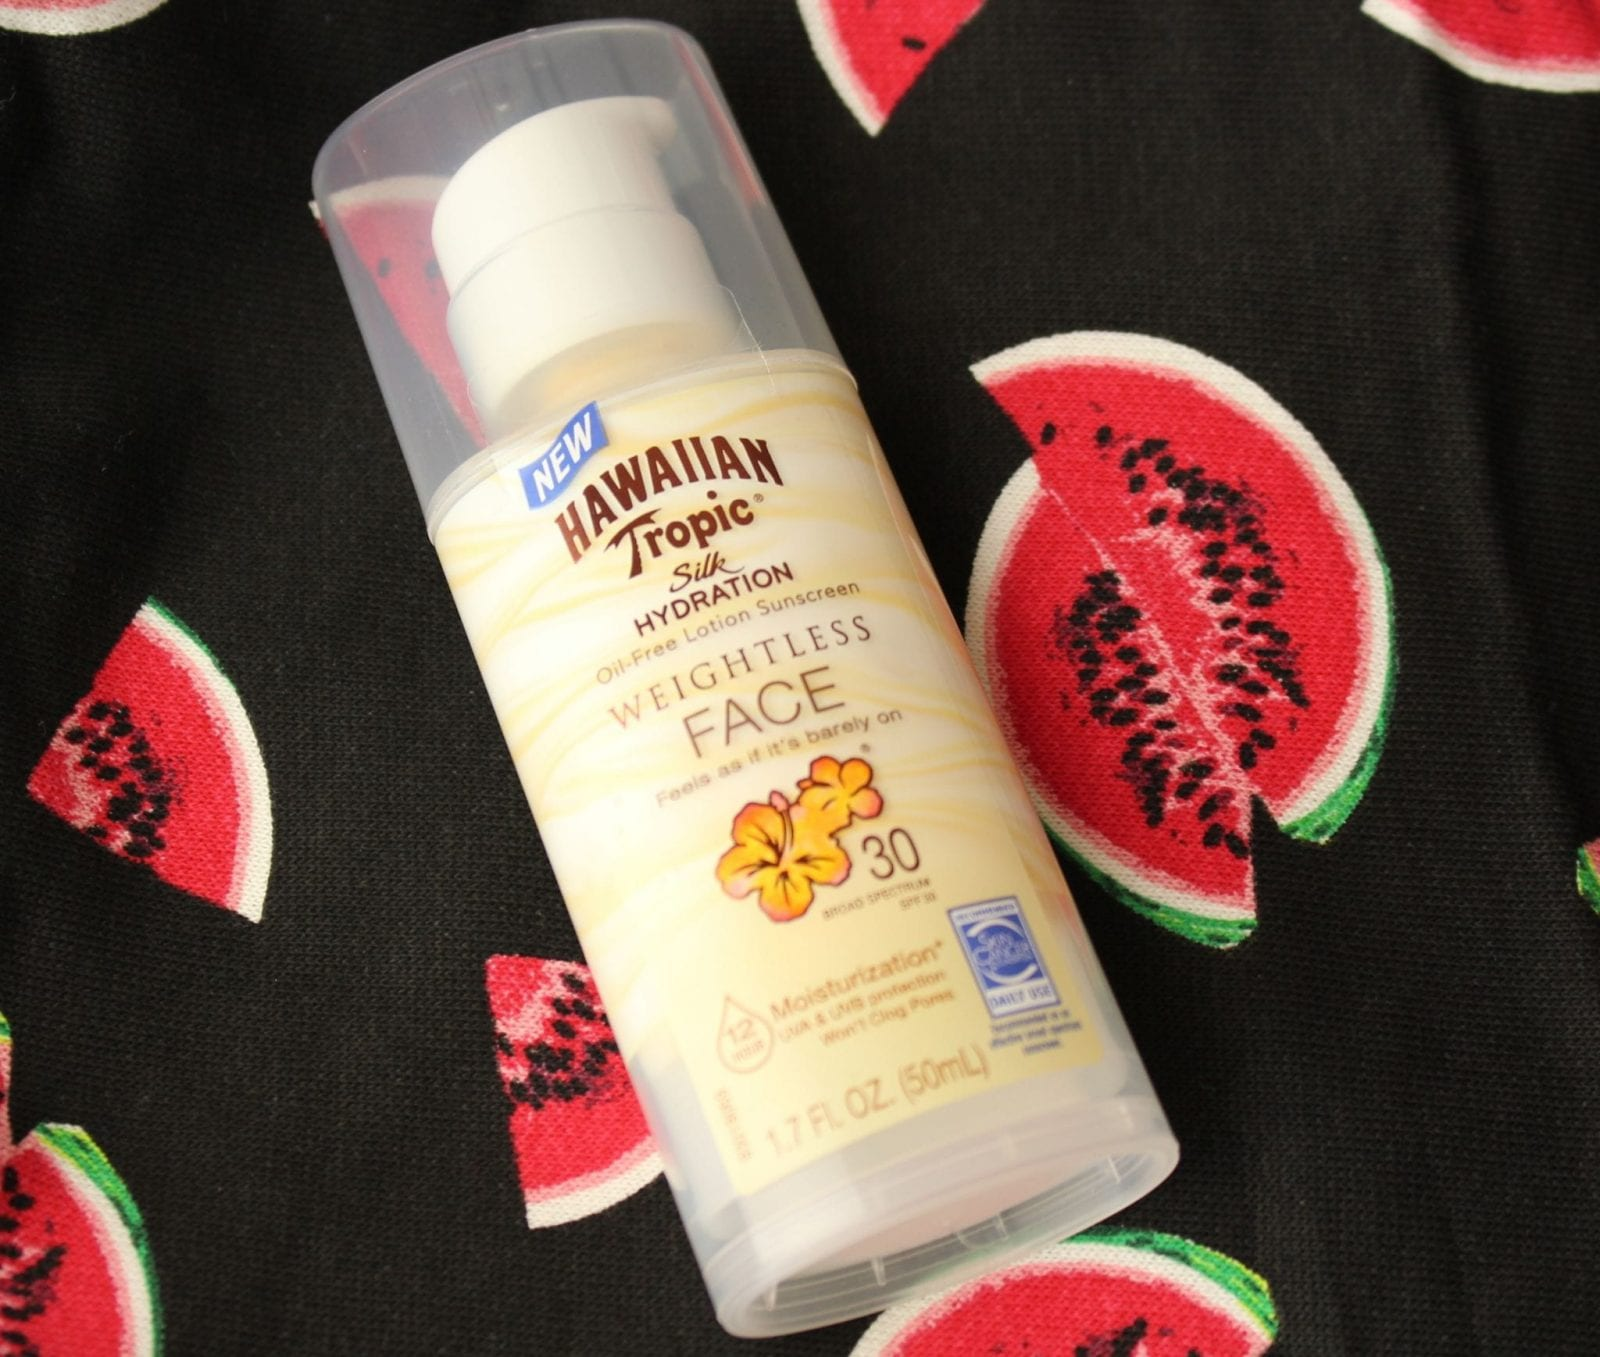 This is a close up of the Hawaiian Tropic® Silk Hydration™ Face Lotion.